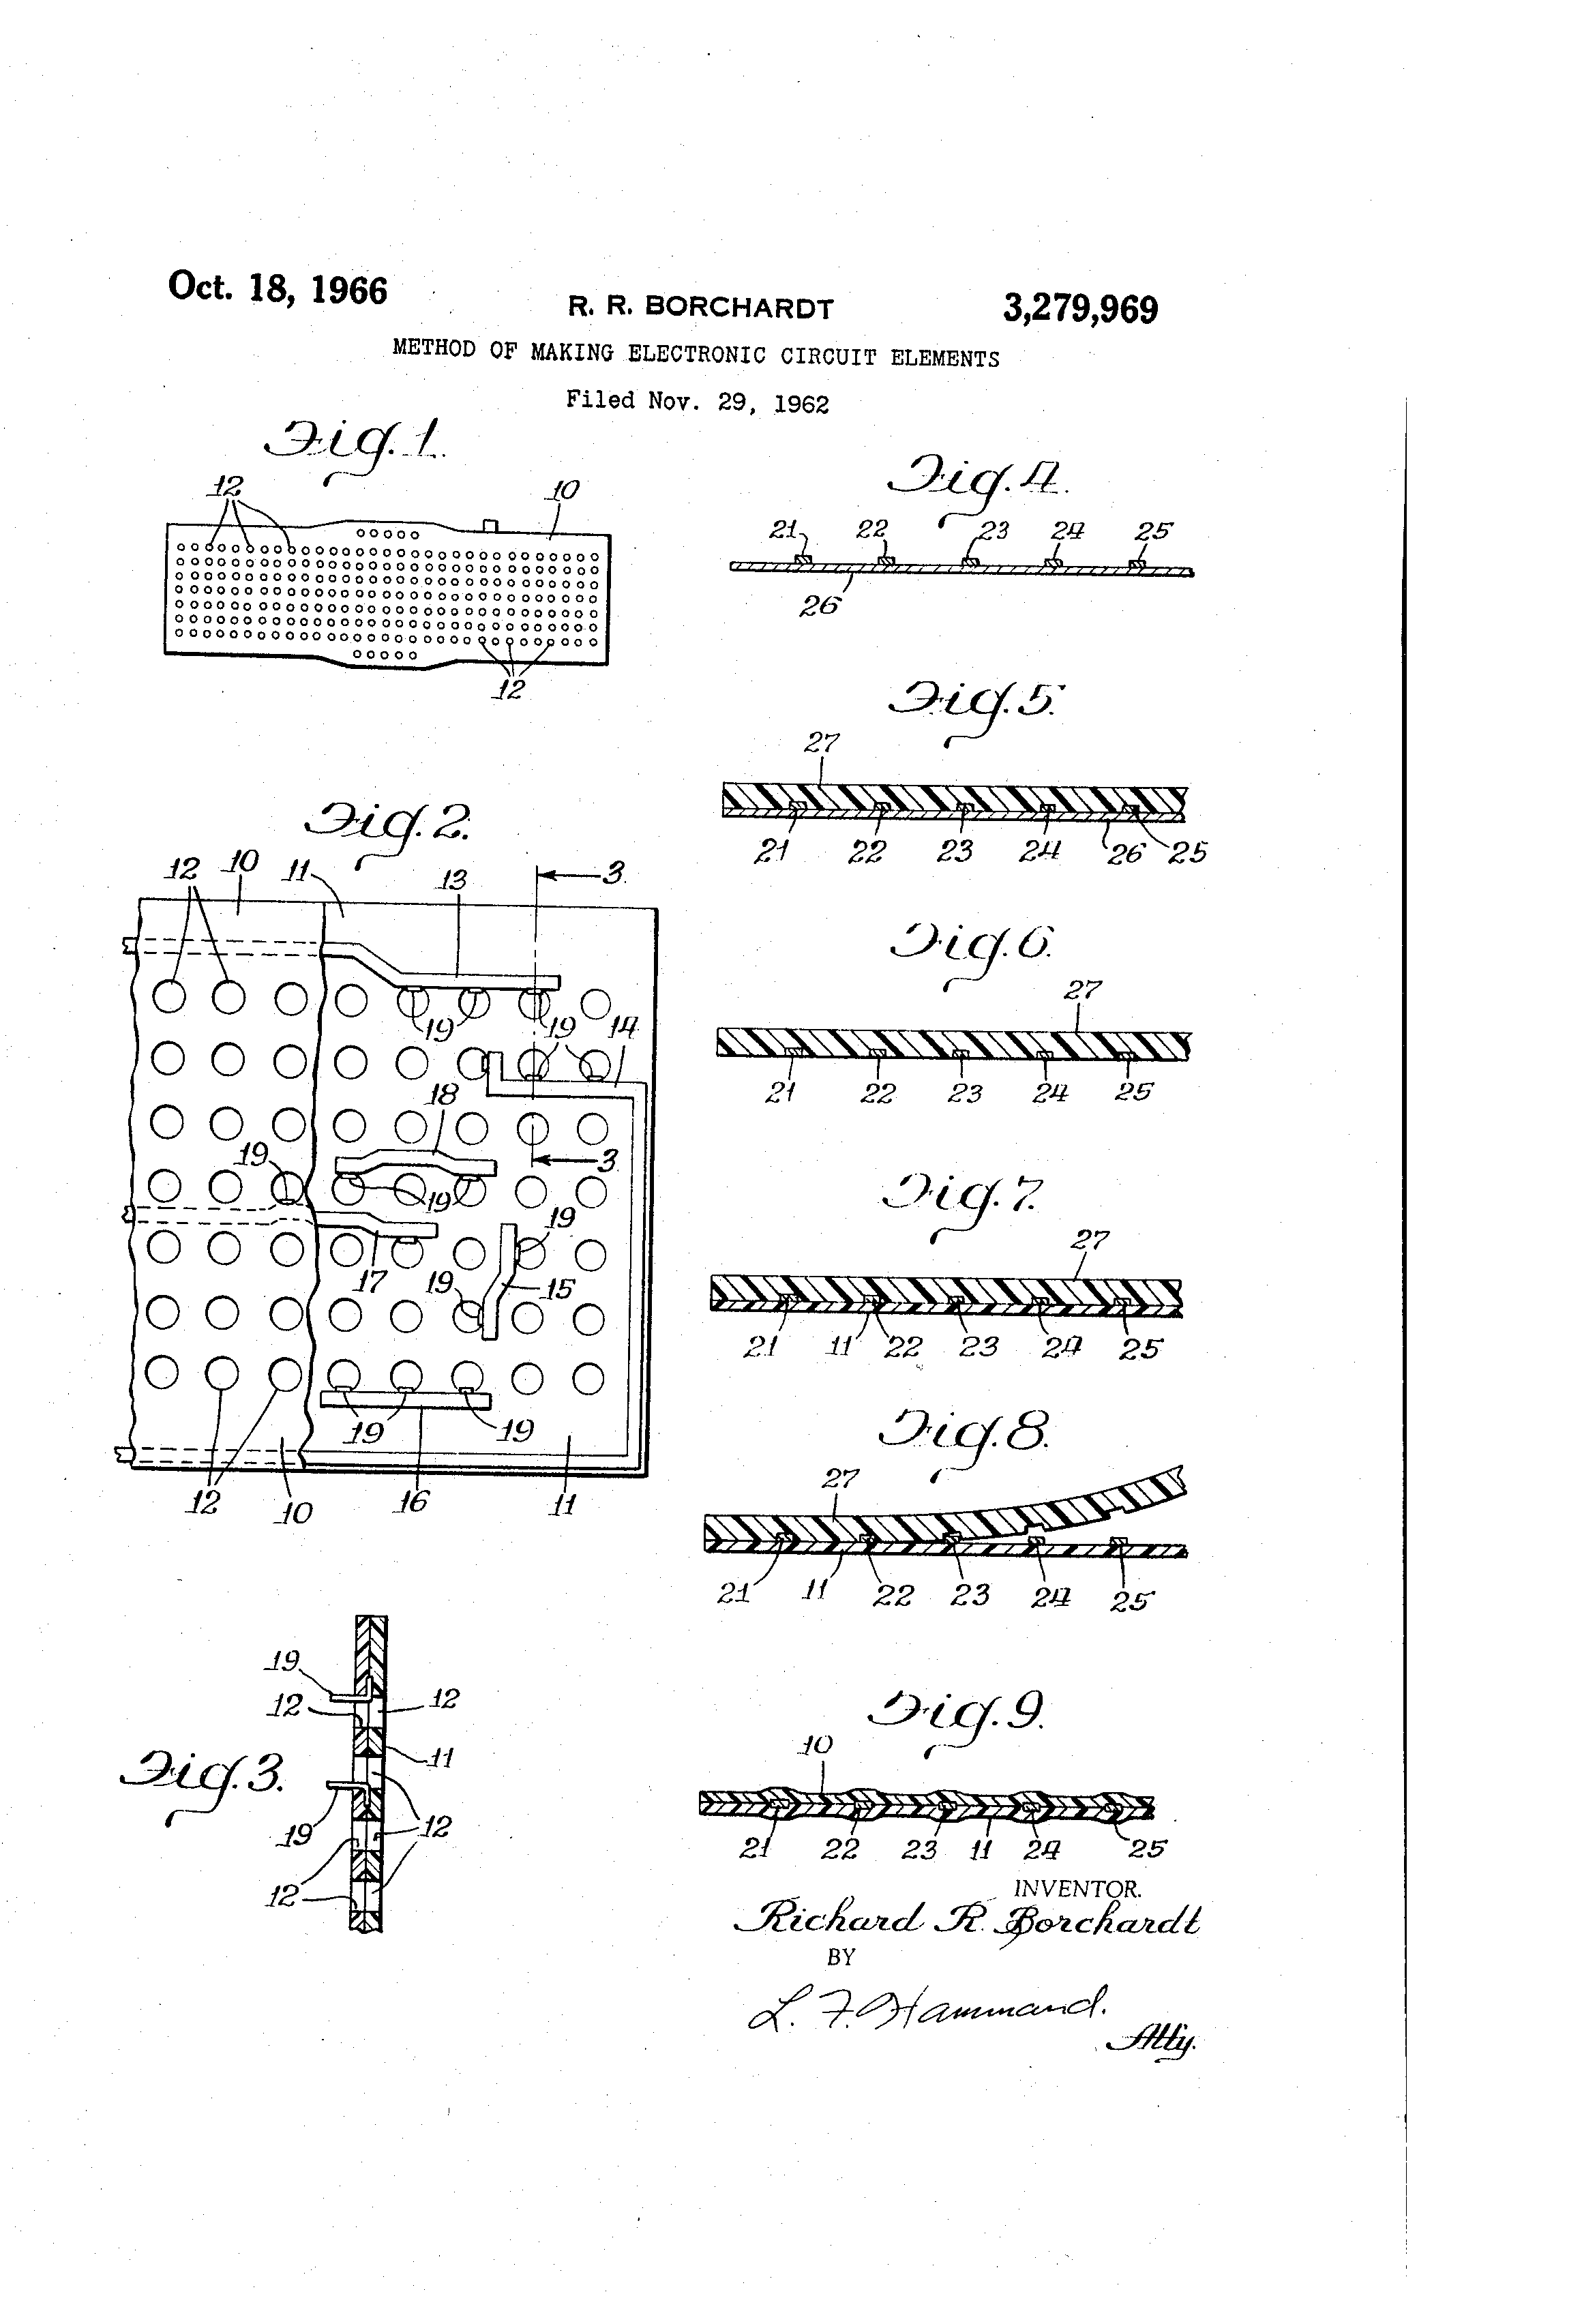 Brevet Us3279969 Method Of Making Electronic Circuit Elements Build Circuits Patent Drawing